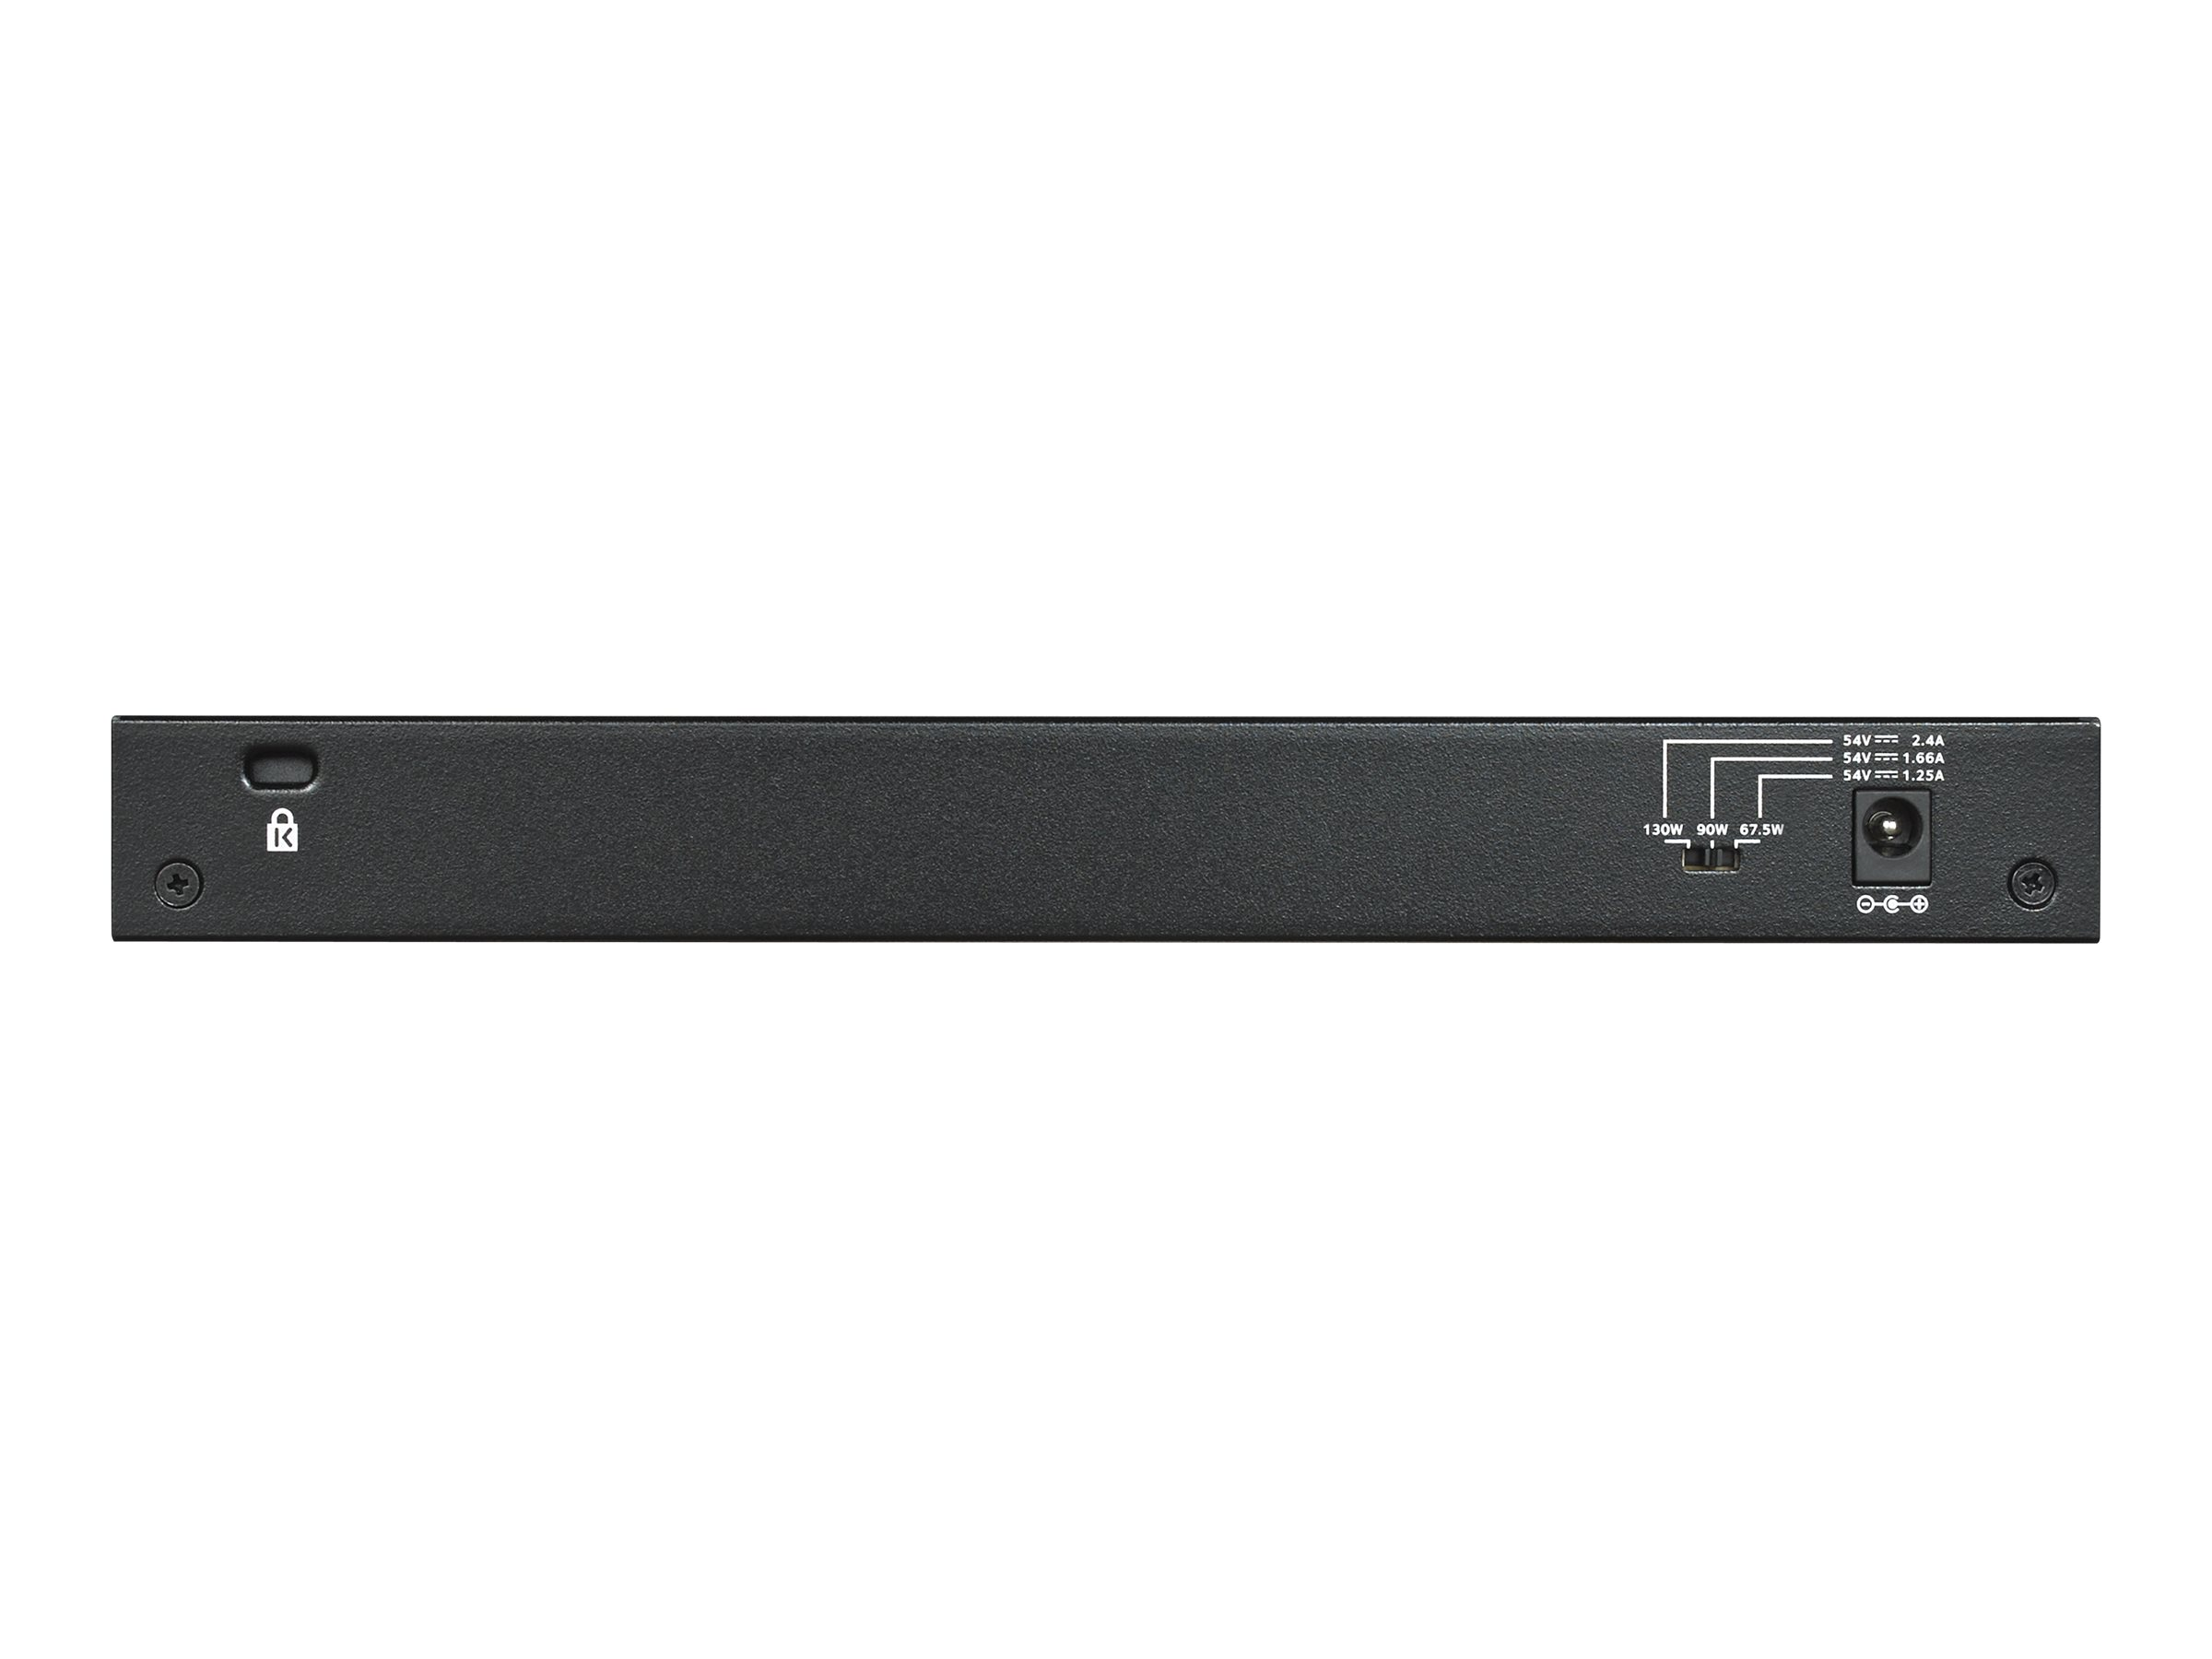 NETGEAR GS308PP - switch - 8 ports - unmanaged